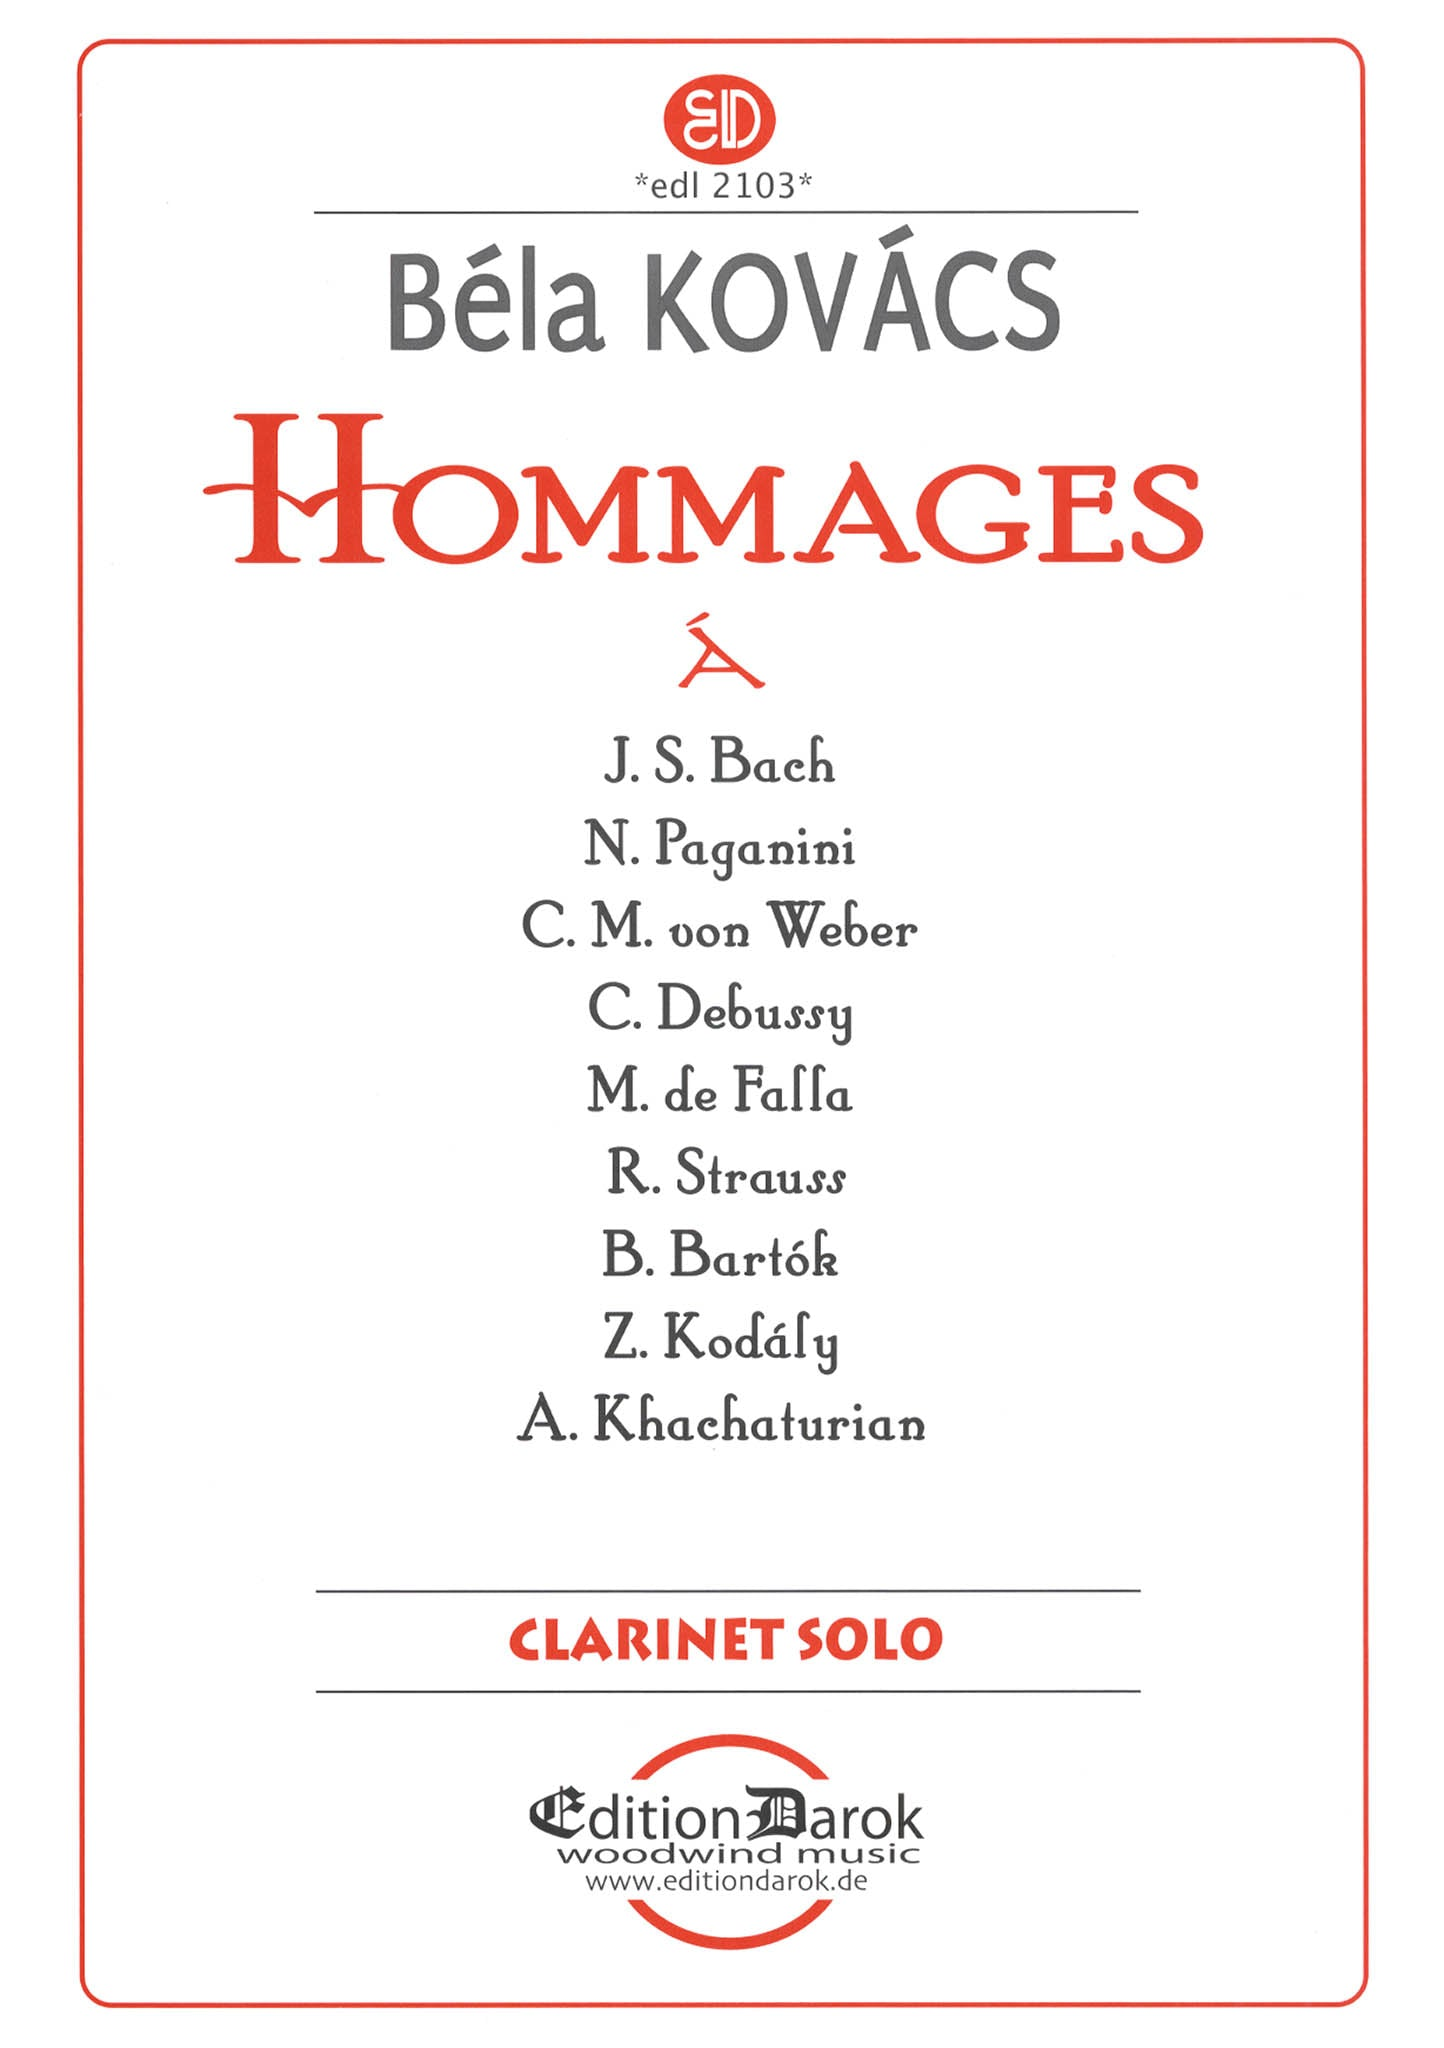 Kovacs Hommages for Clarinet Solo Cover